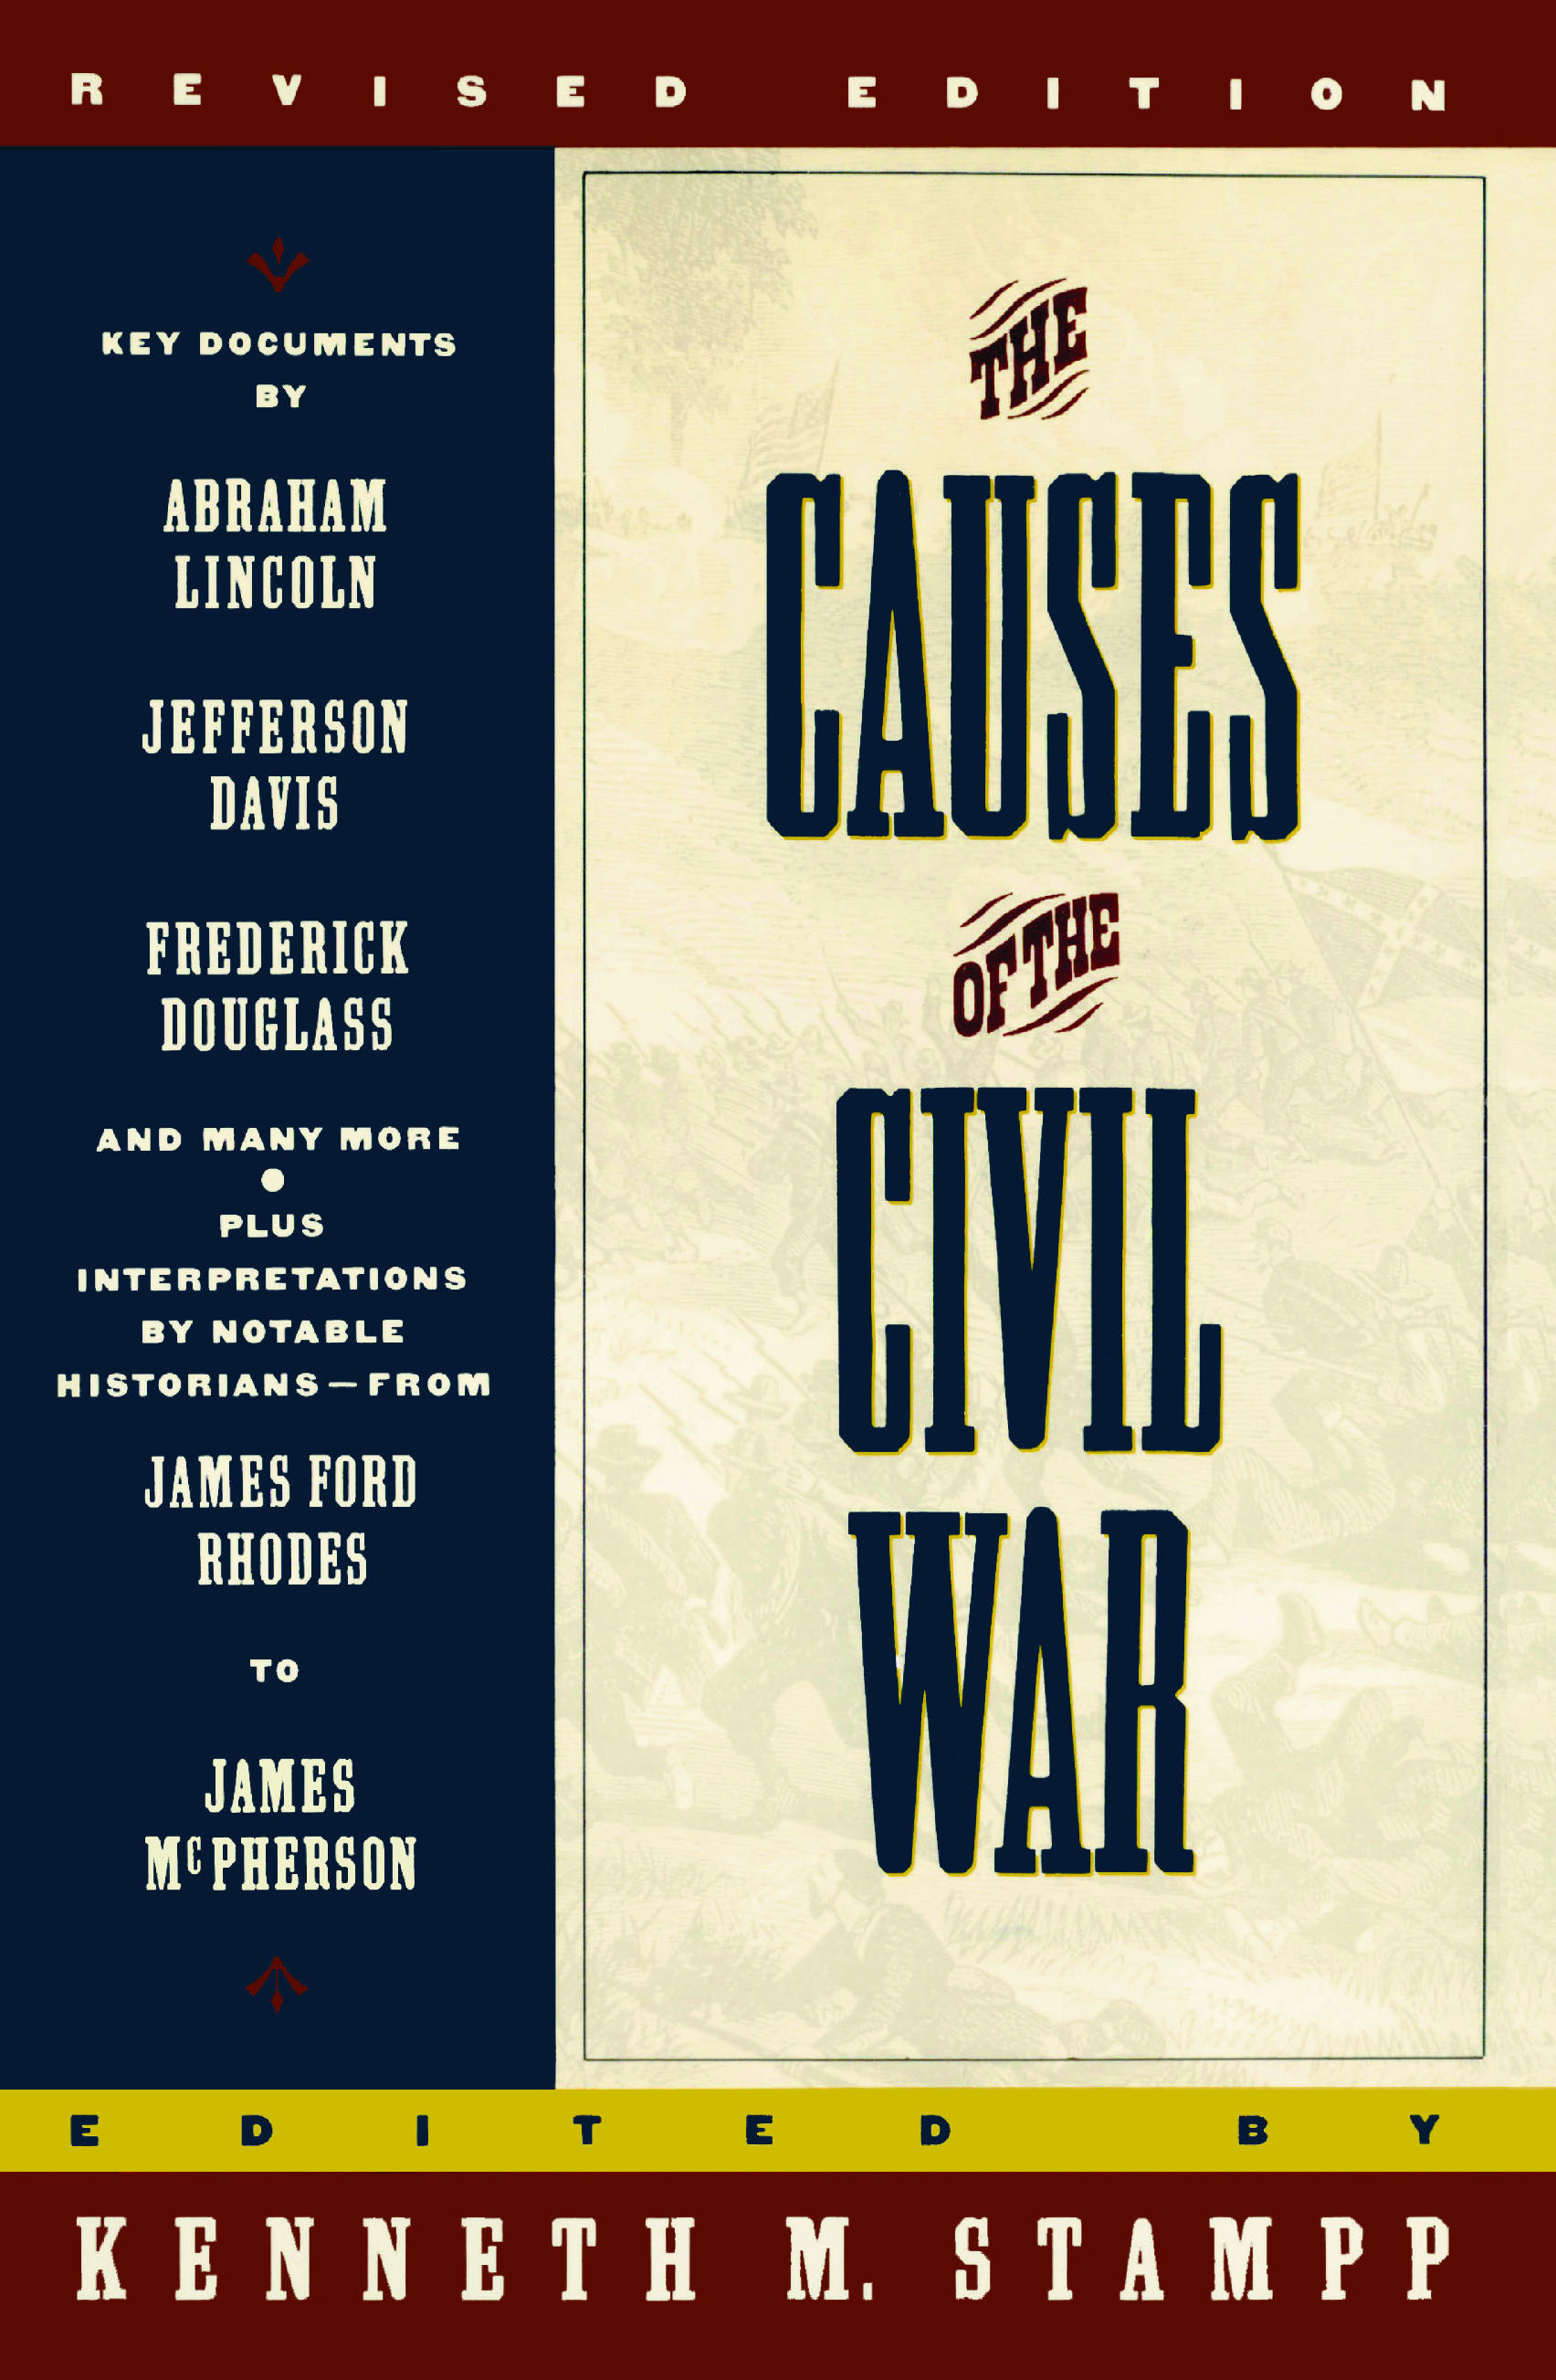 the causes of the civil war book by kenneth stampp official  cvr9780671751555 9780671751555 hr the causes of the civil war